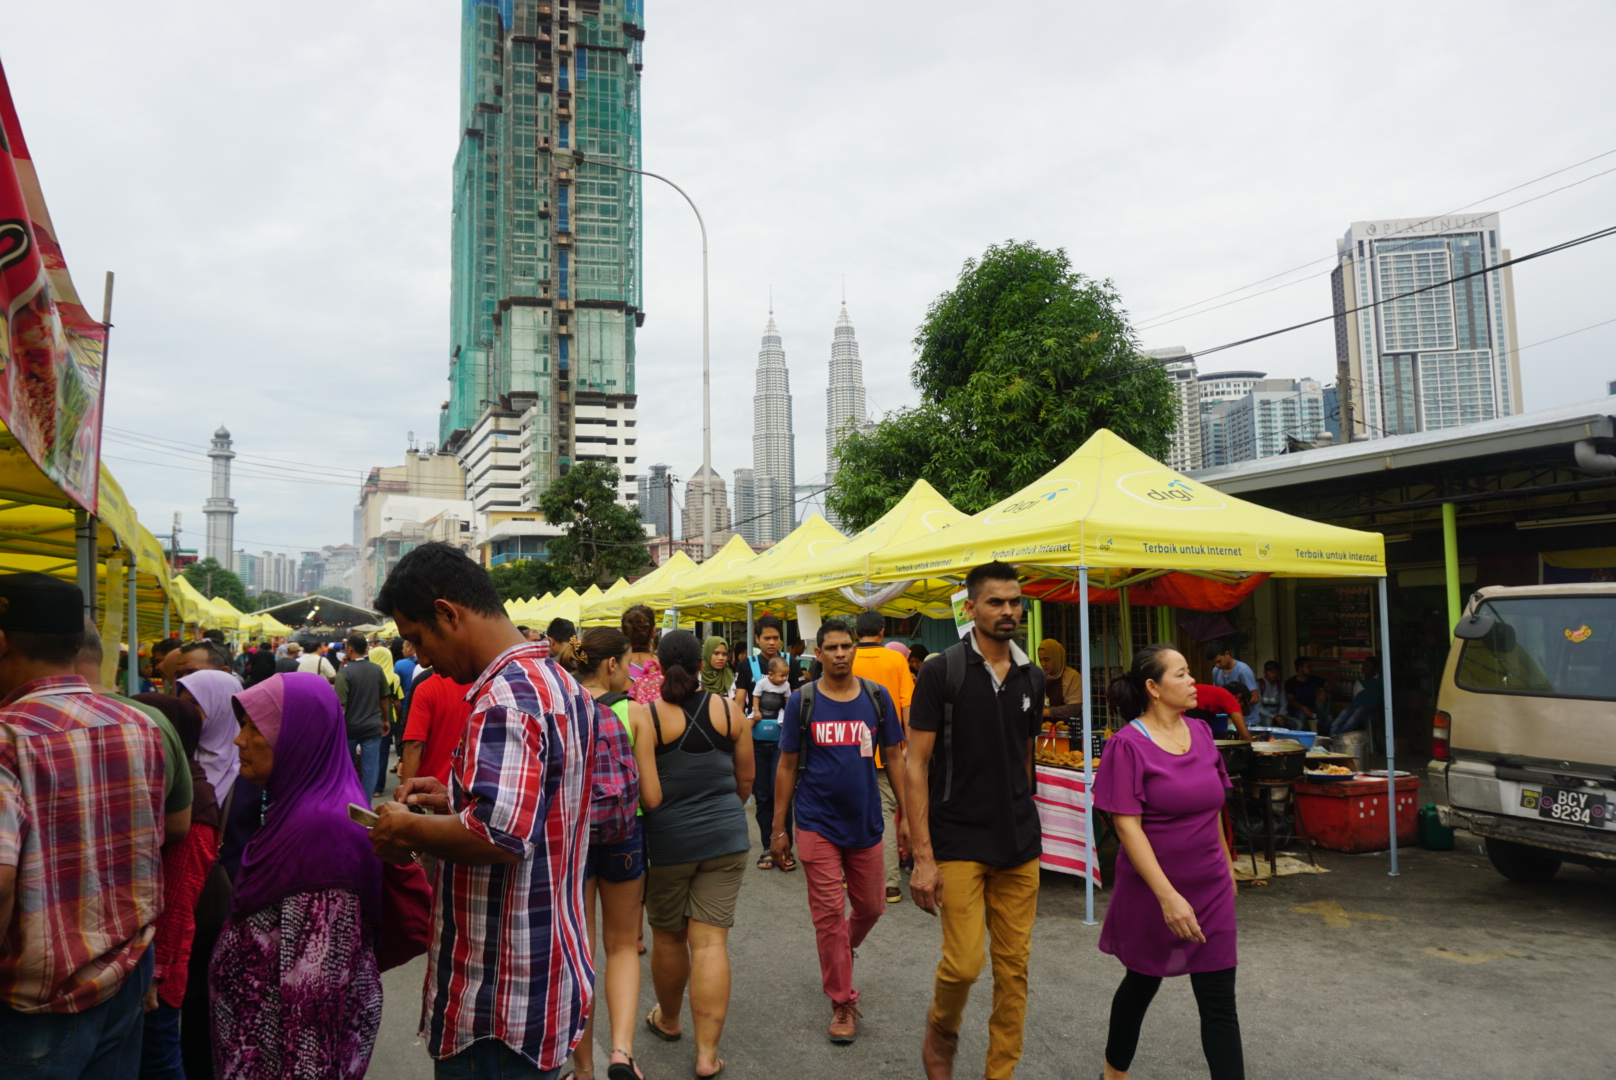 Local residents and office workers browsing and walking along Jalan Raja Alang where the market is located, on the fringes of Chow Kit